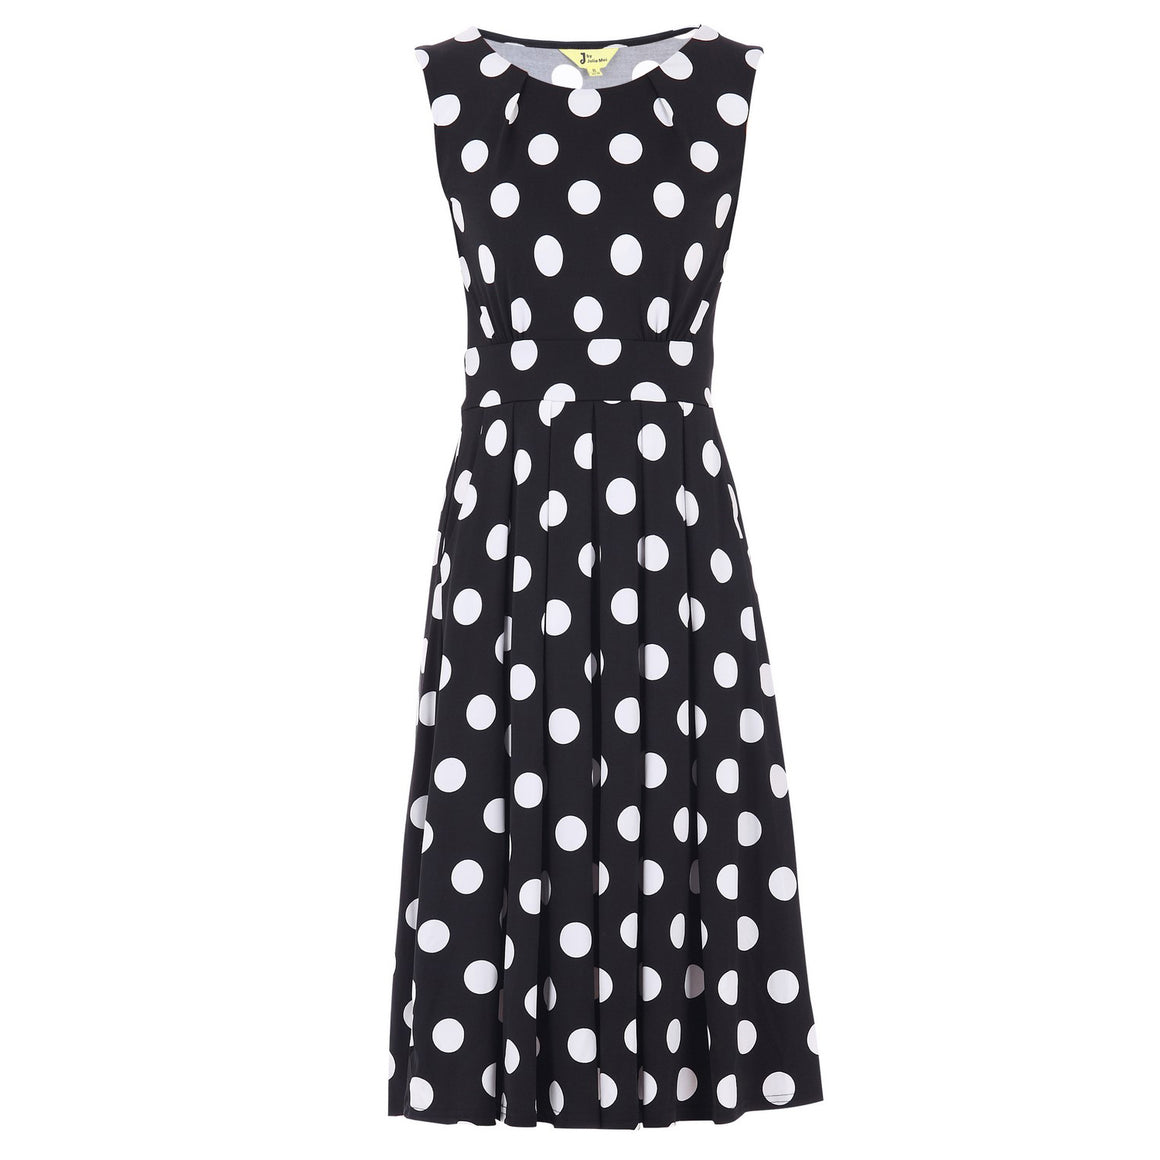 Jolie Moi Black And White Polka Dot Round Neck Midi Dress - Pretty Kitty Fashion